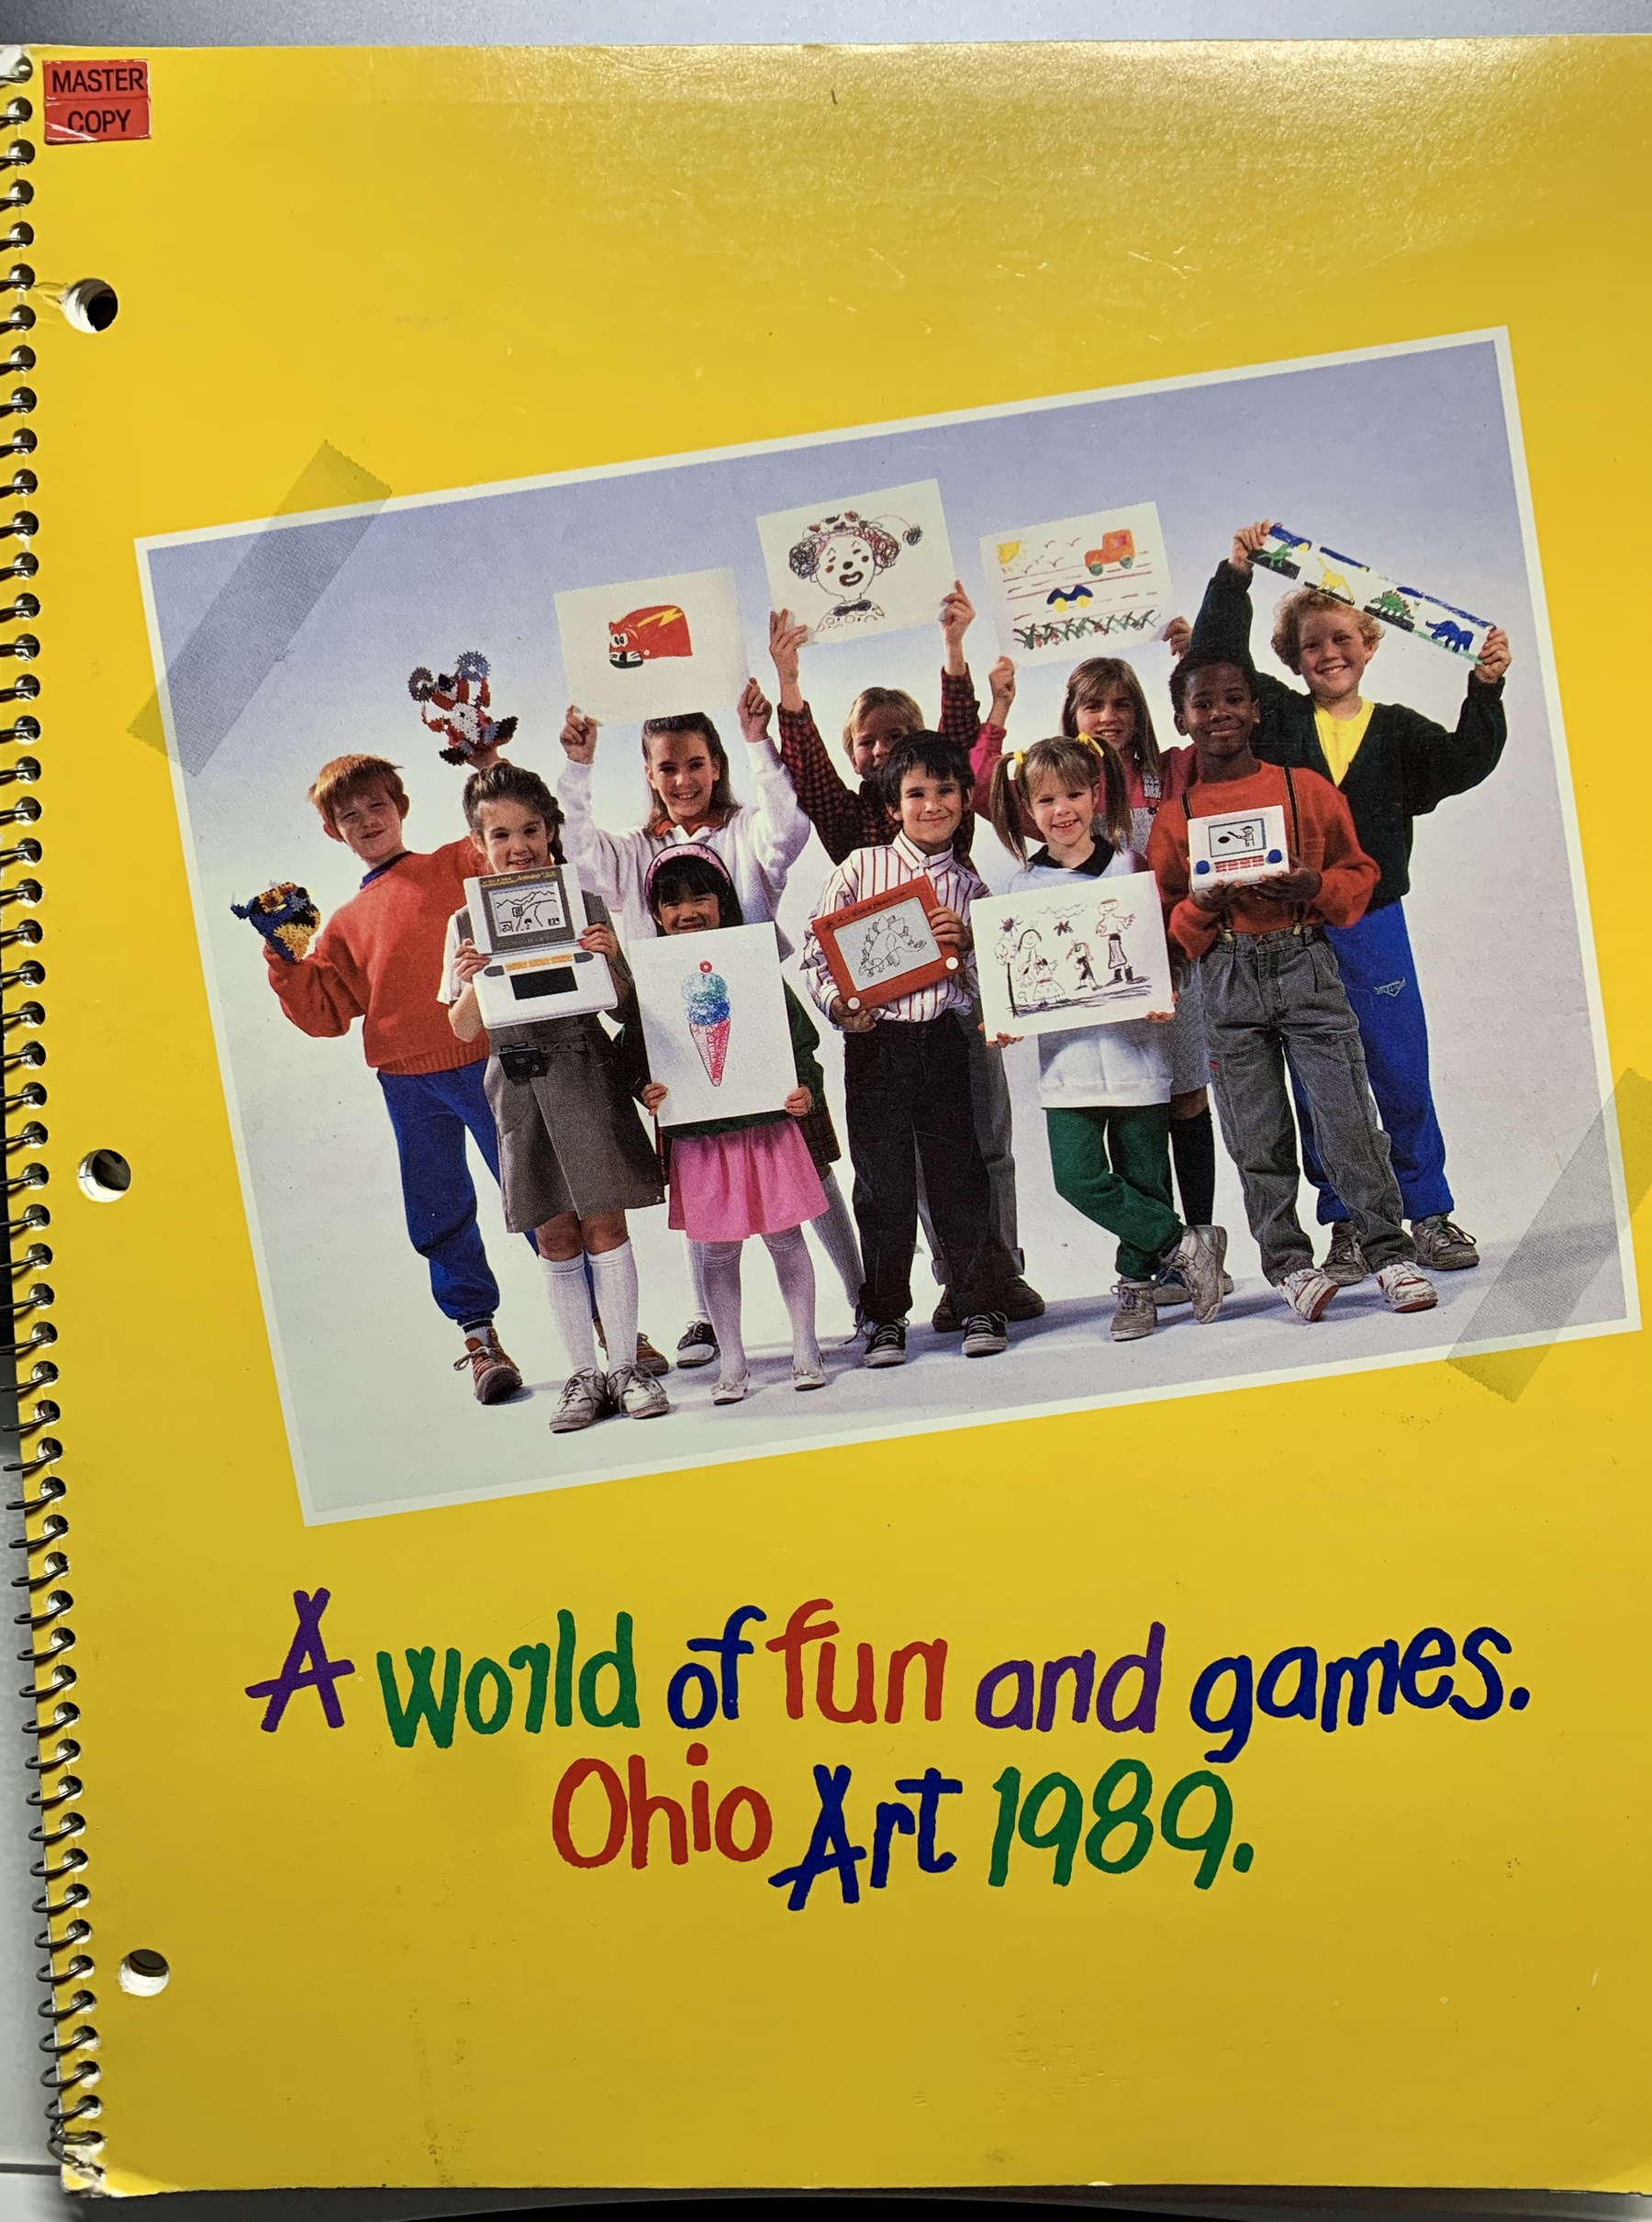 Ohio Art 1989 Catalog cover